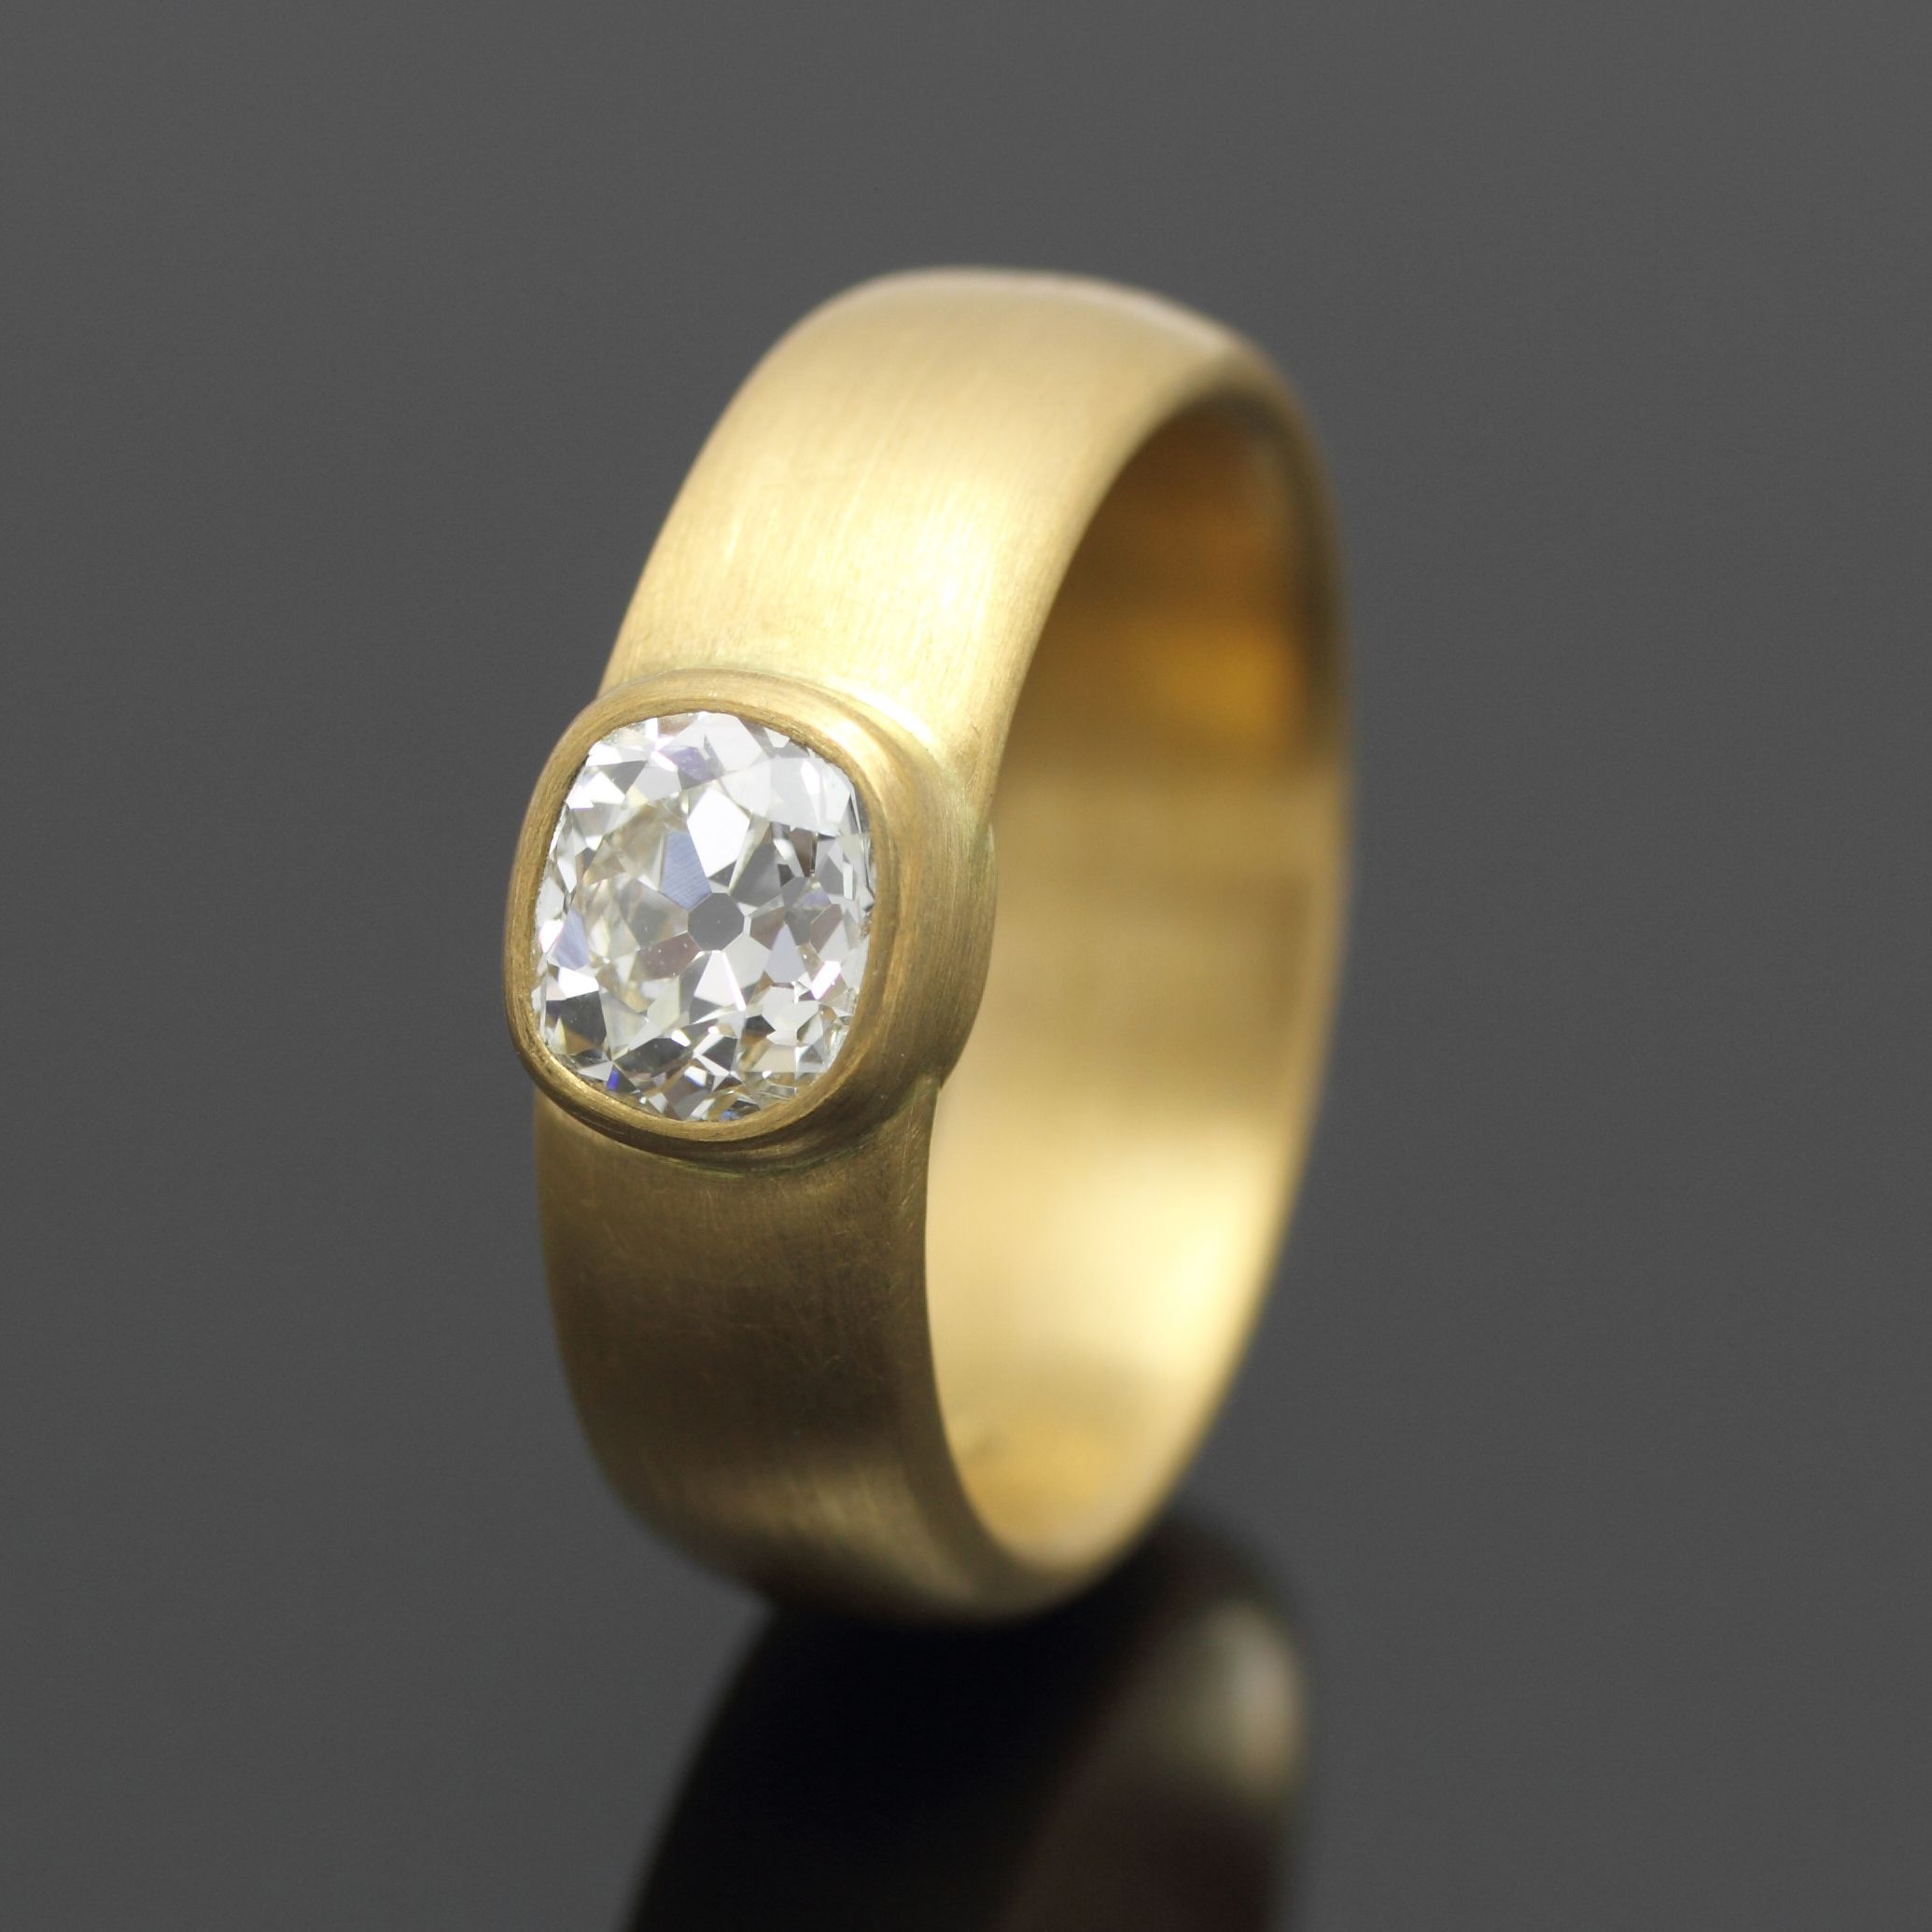 Antique Cushion Cut Diamond Ring In 22ct Gold hey a girl can